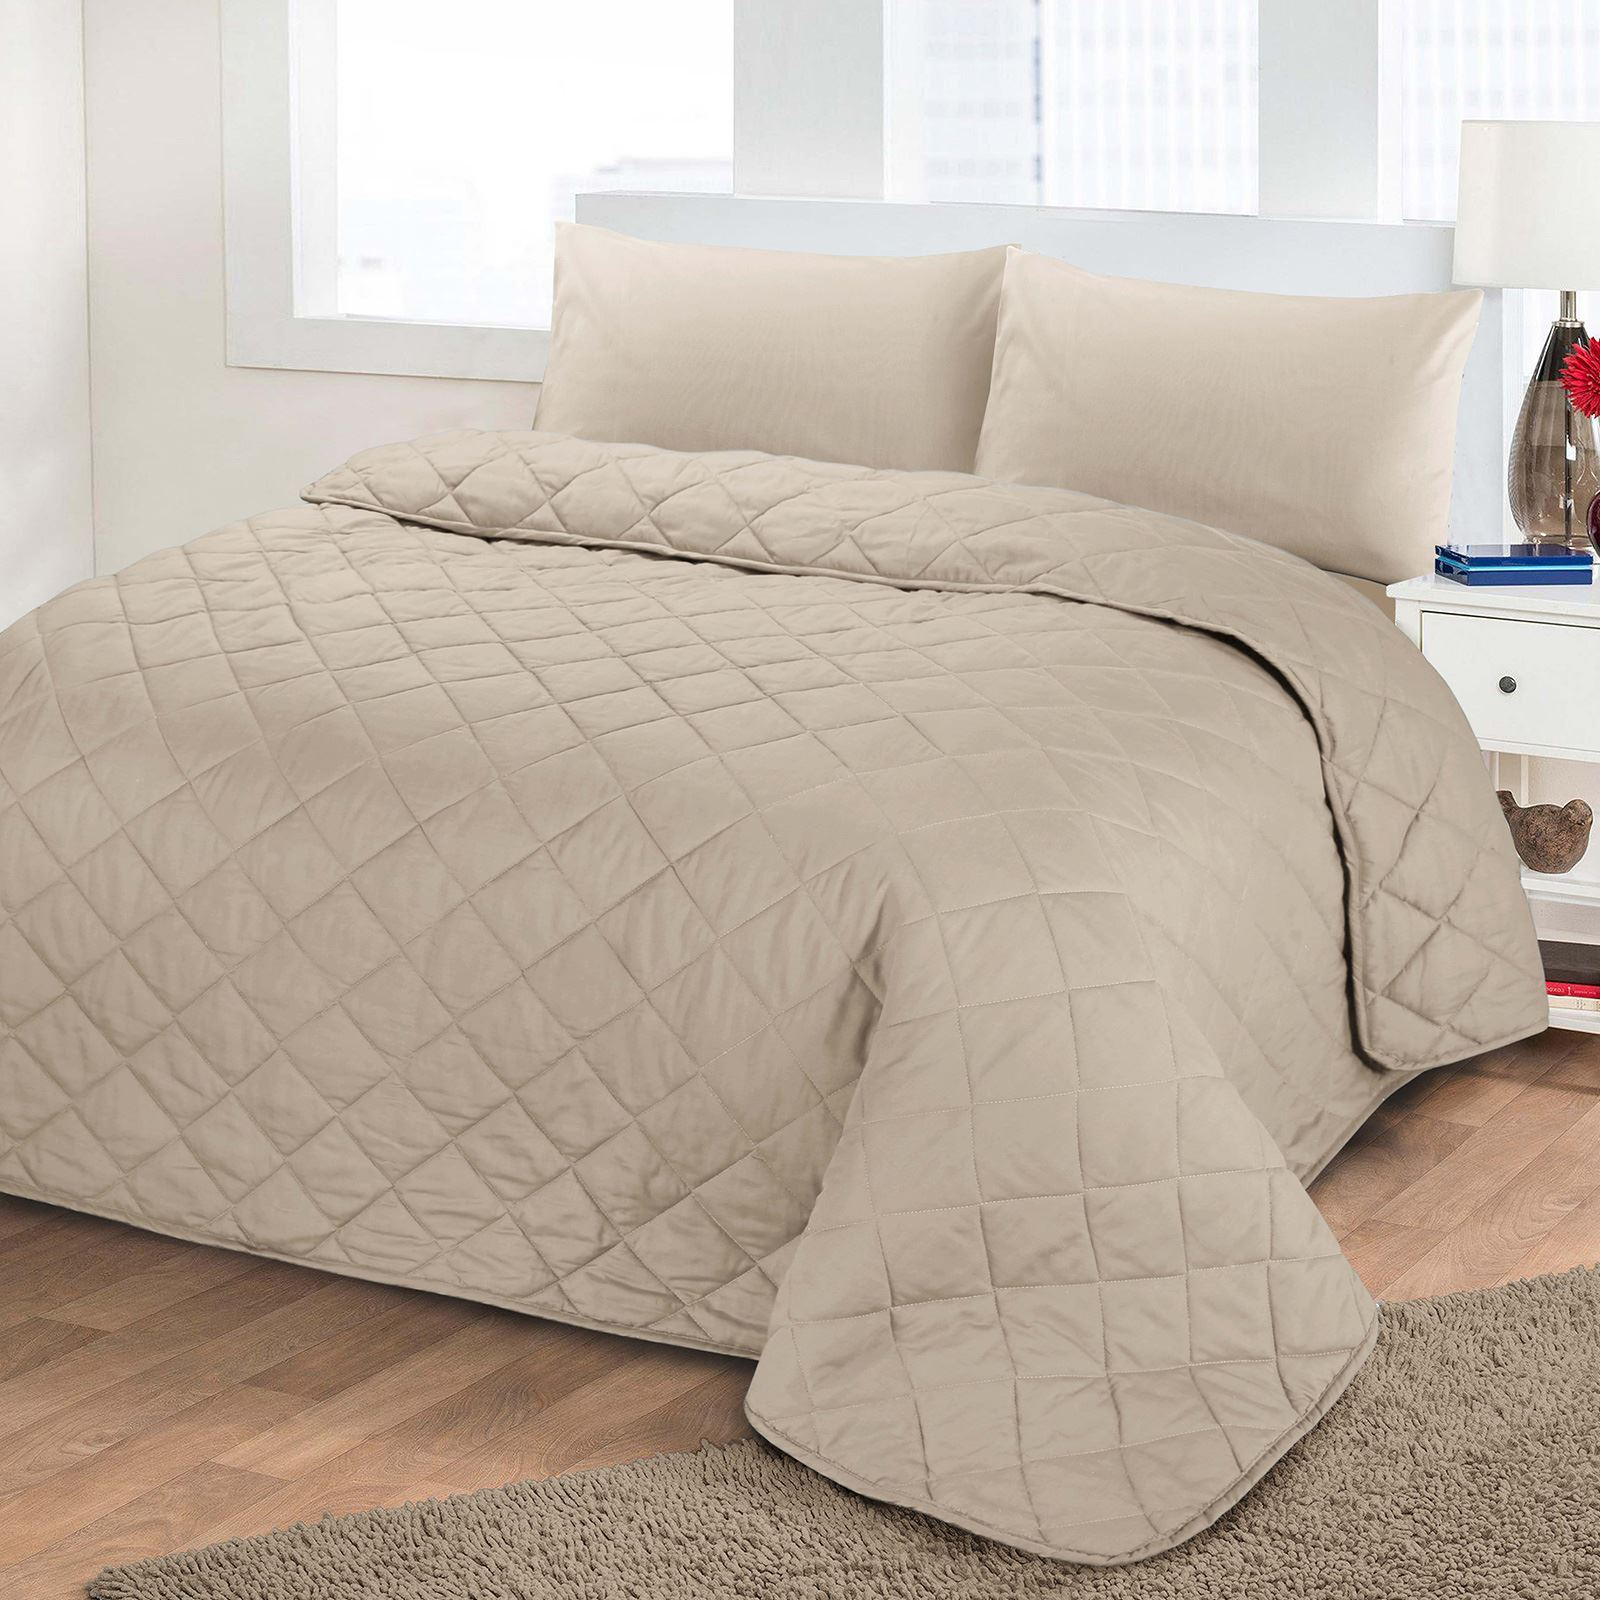 Double Bed Bedspreads Uk